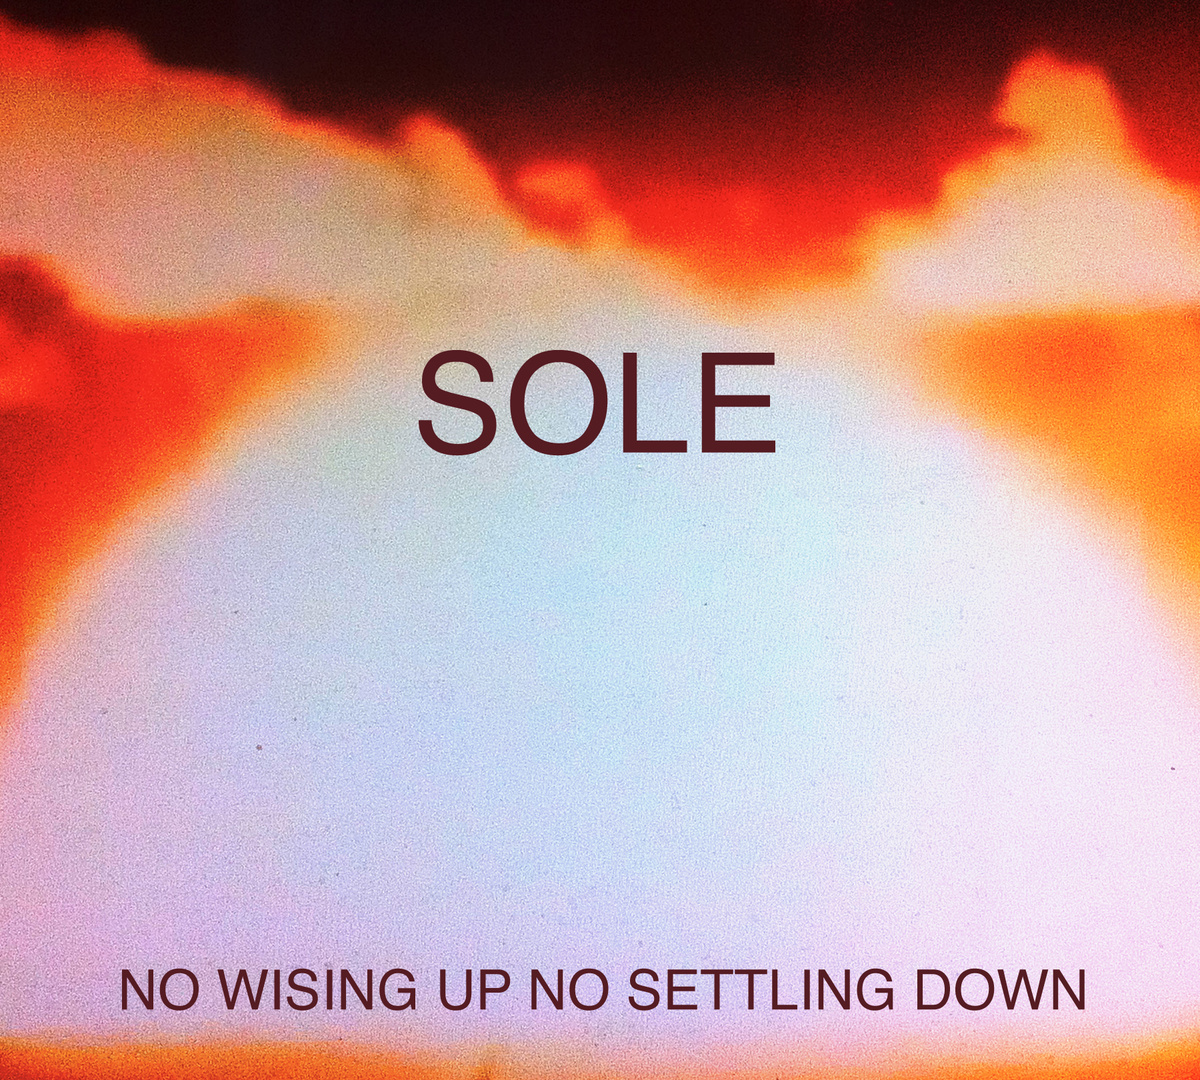 Sole:  No Wising Up No Settling Down